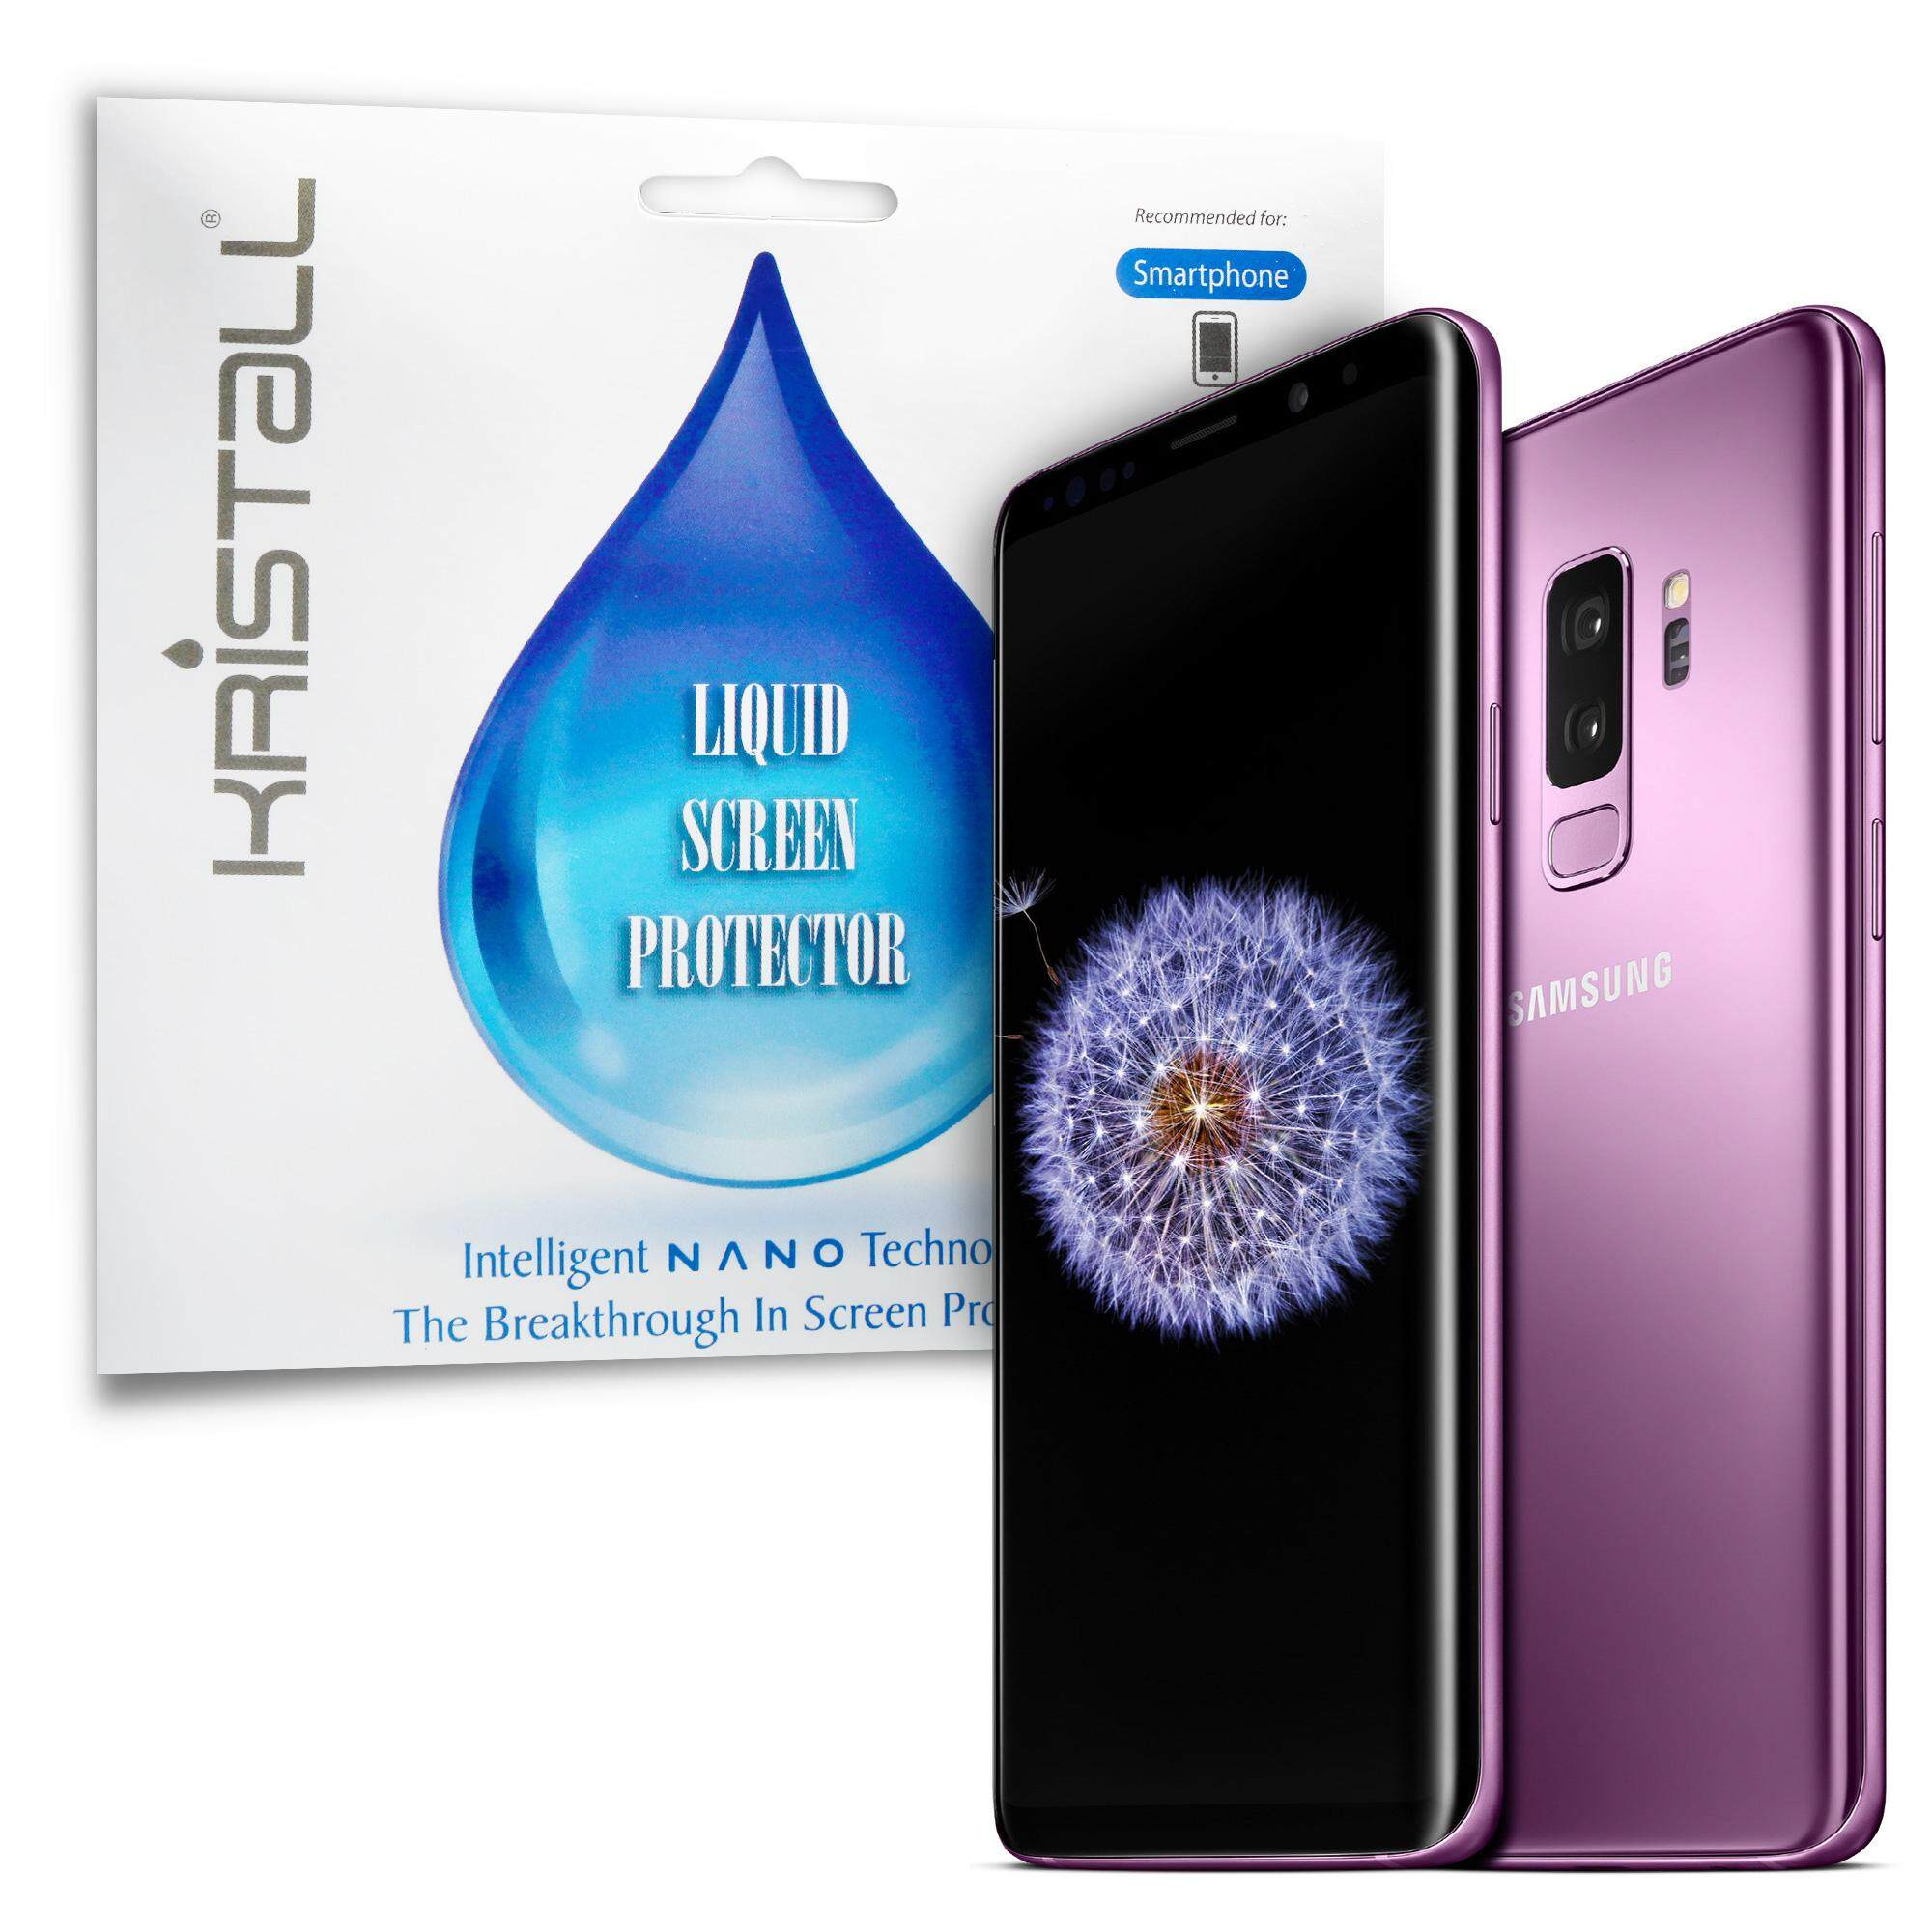 Samsung Galaxy S9 Galaxy S9+ Screen Protector - Kristall® Nano Liquid  Screen Protector (Bubble-FREE Screen Protector, 9H Hardness, Scratch  Resistant)